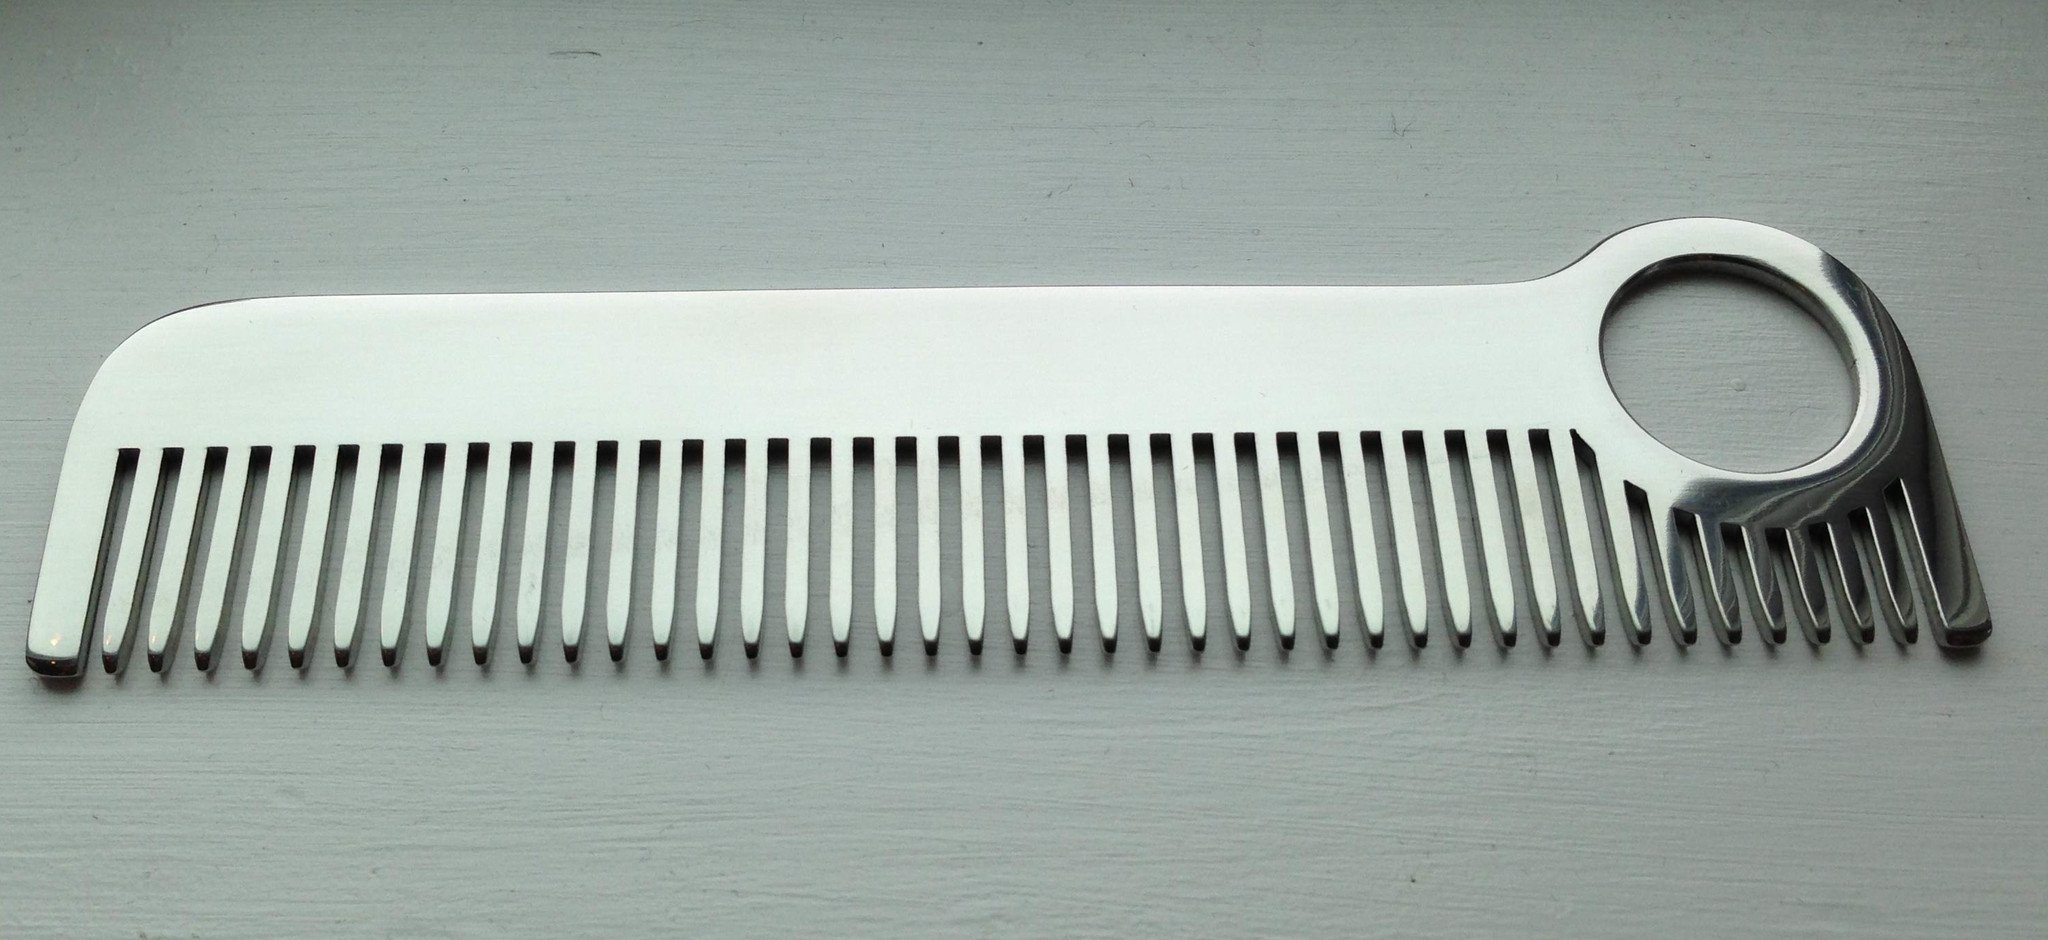 Chicago Comb Co. Model No. 1 Stainless Steel Medium-Fine Tooth Comb Comb Chicago Comb Co Mirror